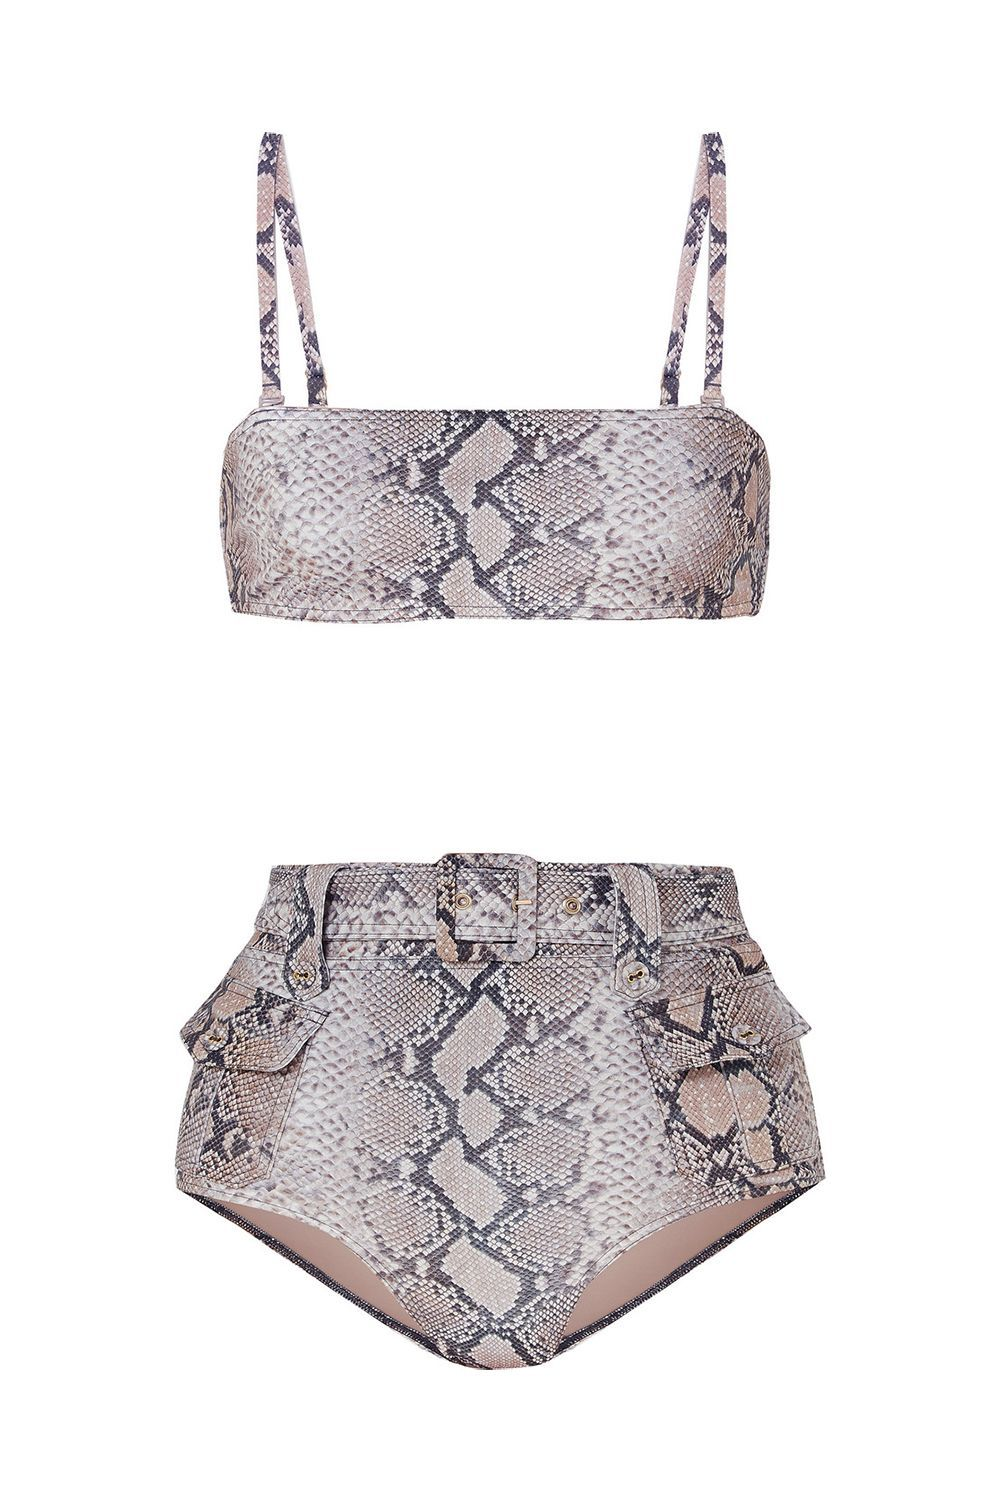 Best for Trend-Driven Gals Corsage Safari Snake-Print Belted Bikini Zimmermann net-a-porter.com $405.00 SHOP IT Last season was all about the gingham print. This season, the focus is on snakeskin.